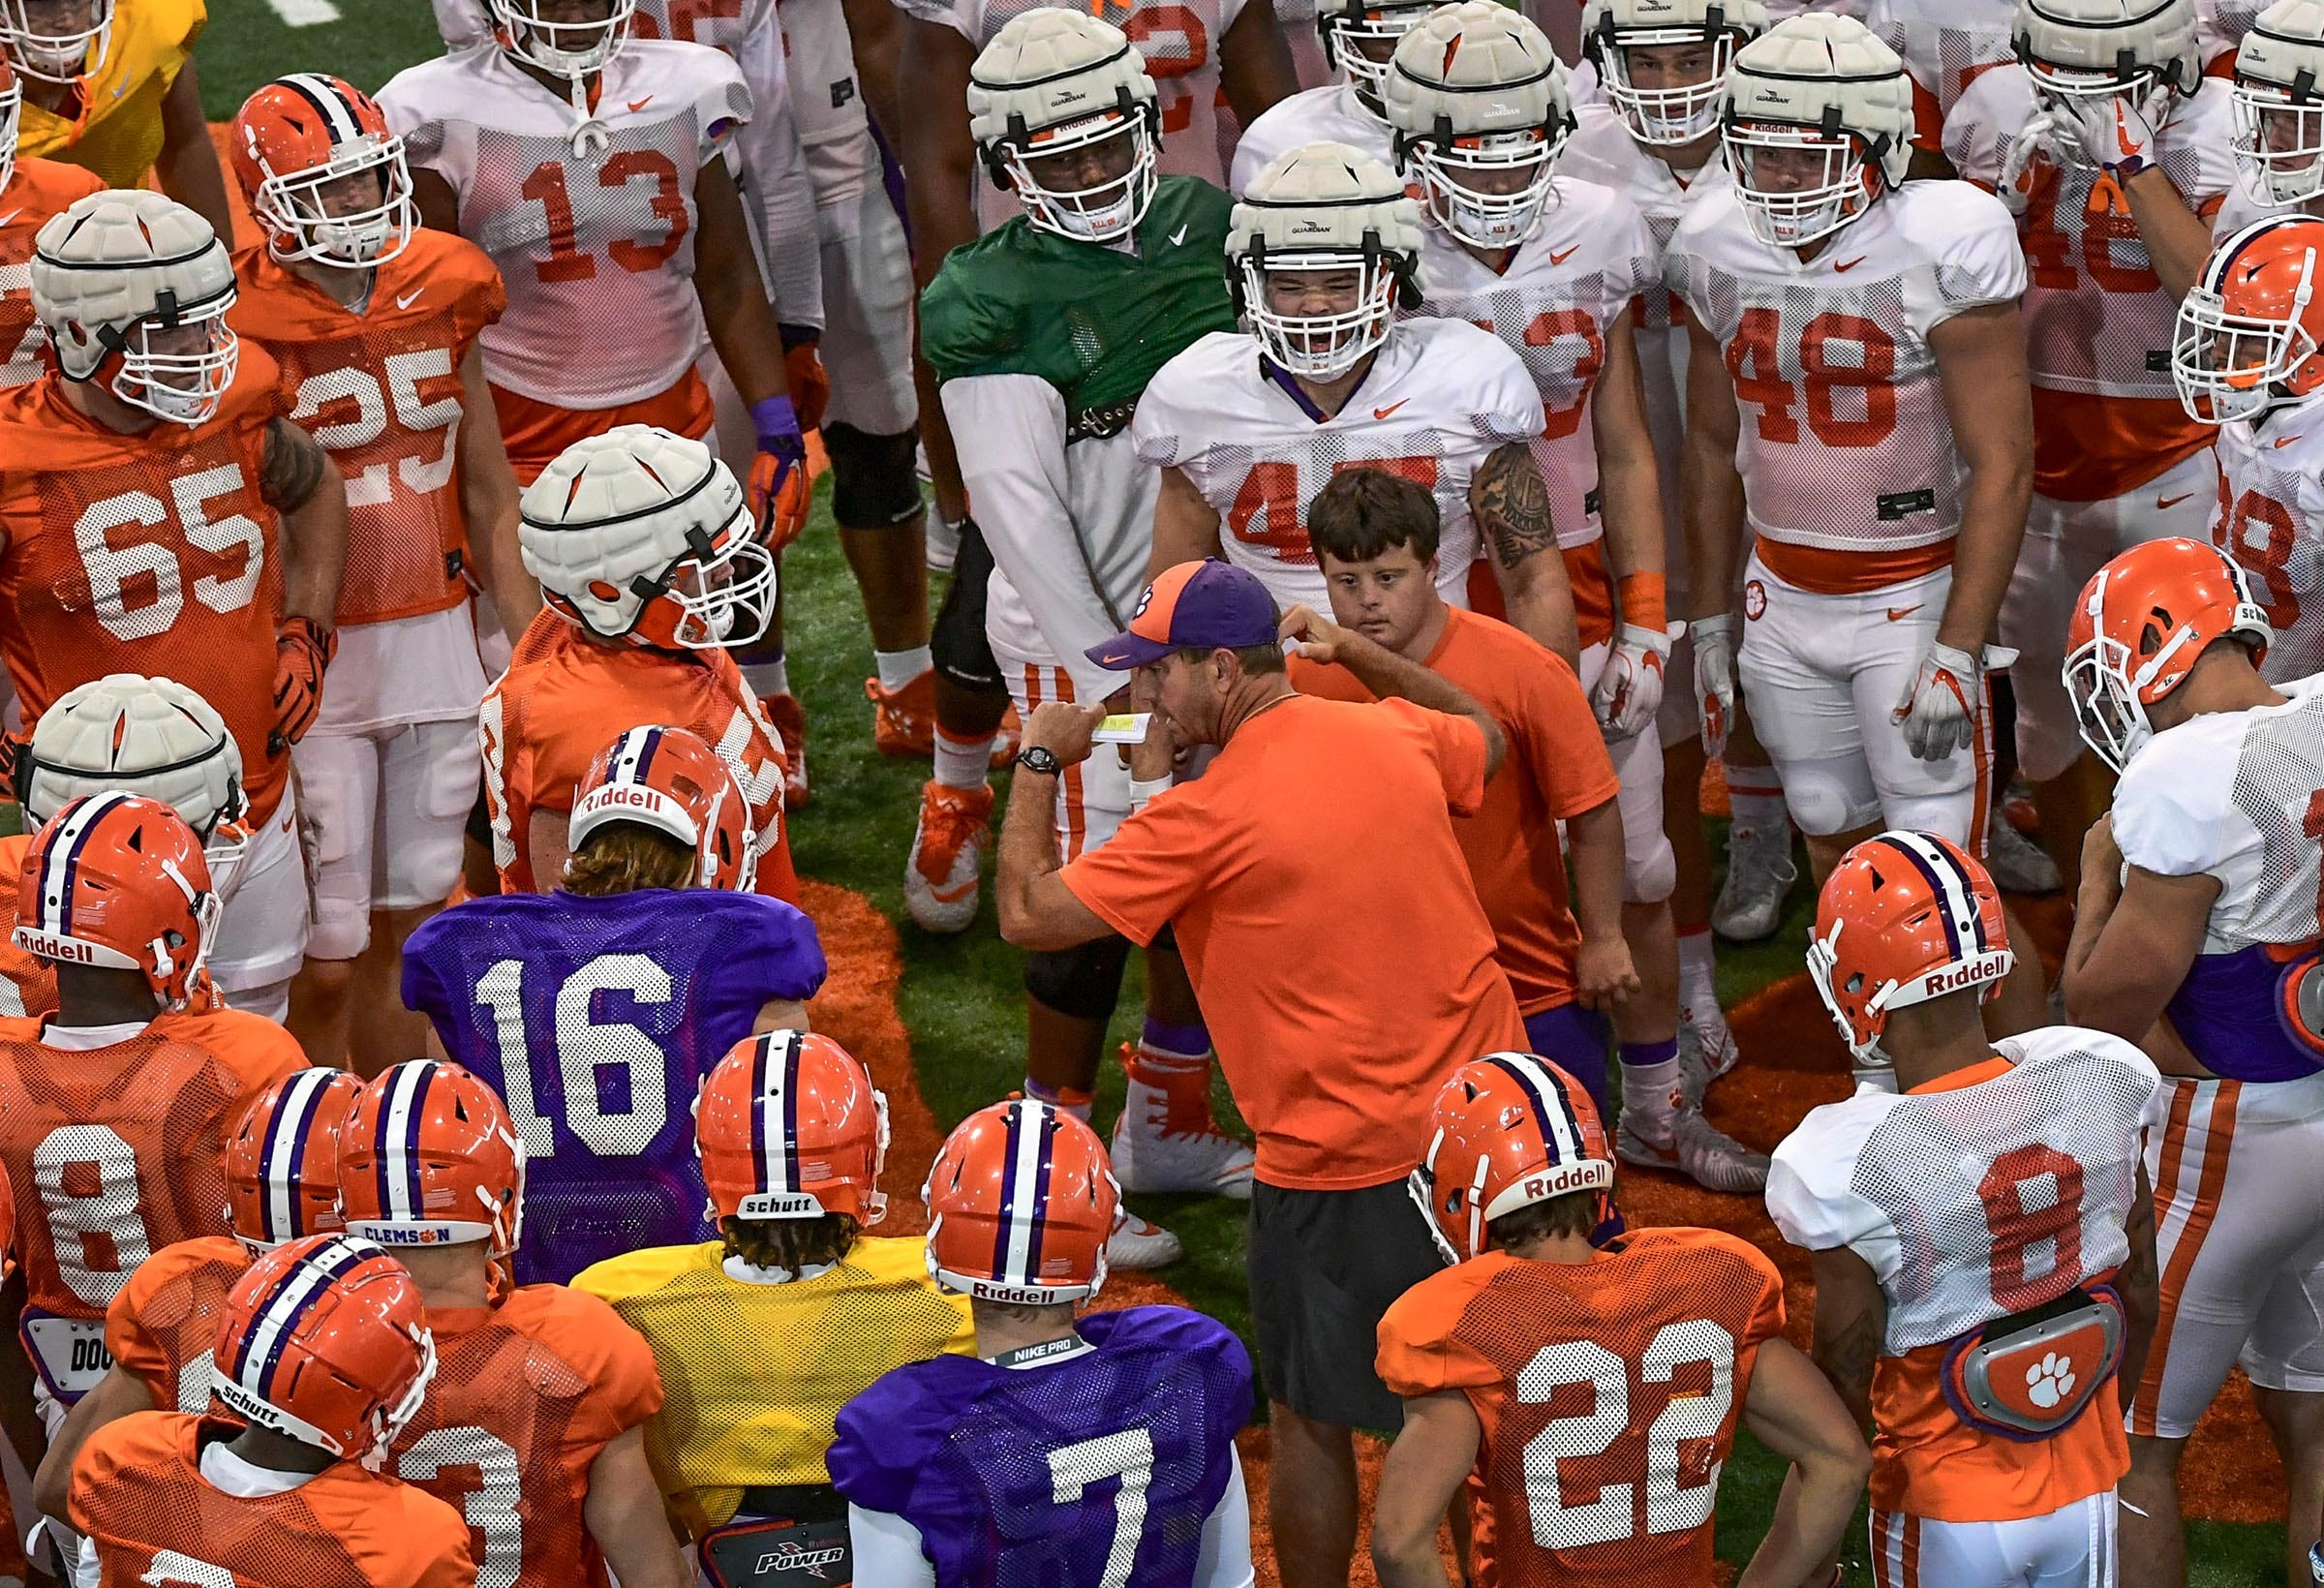 Dabo Swinney Talks About The Team After Aug 8 Practice